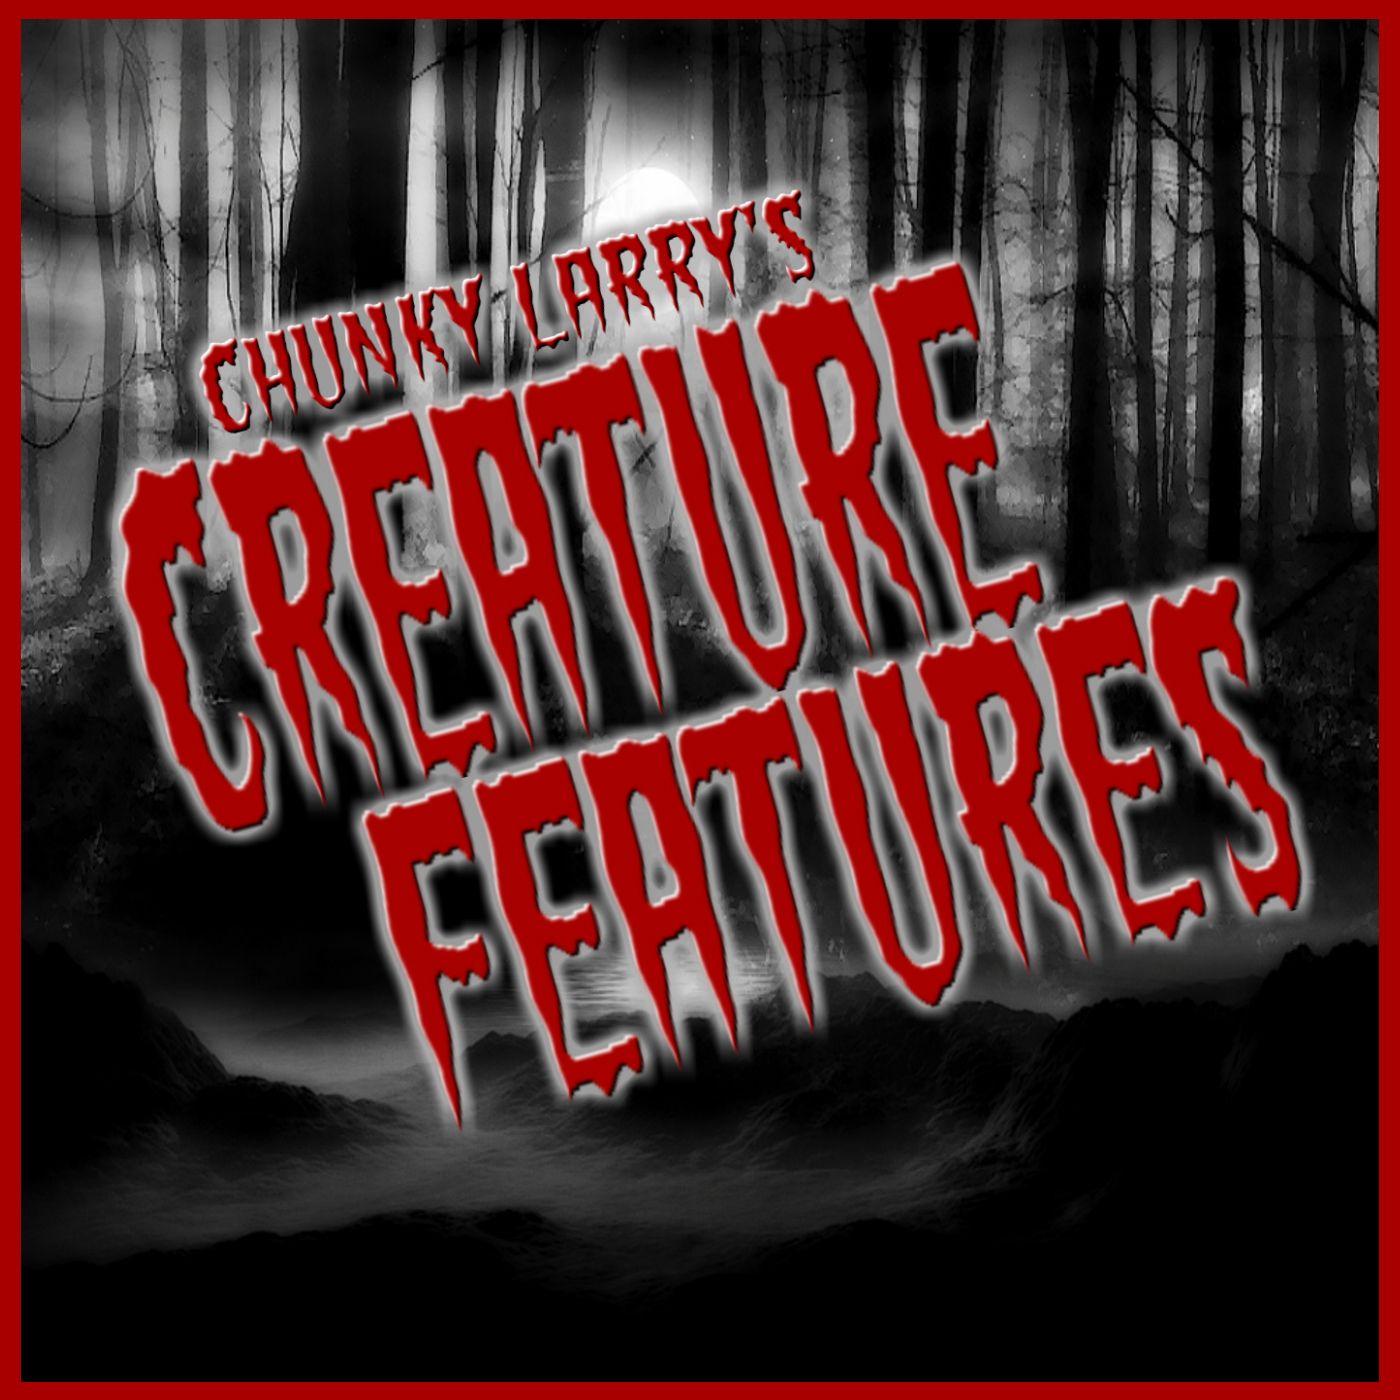 Chunky Larry's Creature Features - Geeks of the Industry